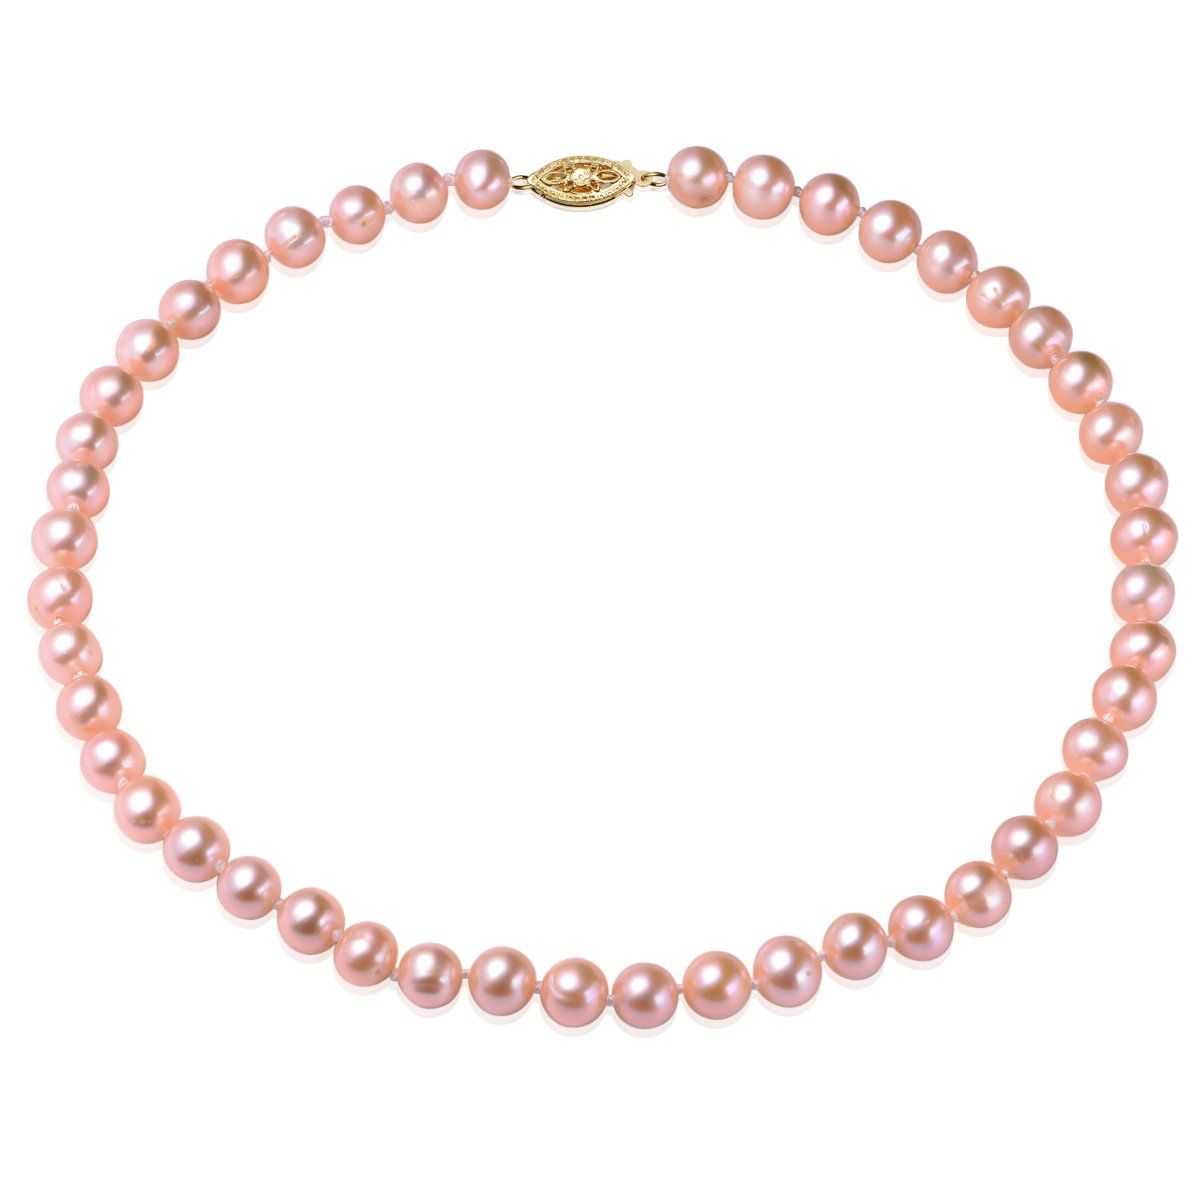 pink, 7-8mm, aa, cultured freshwater pearl strand necklace with 14k solid yellow gold fish hook